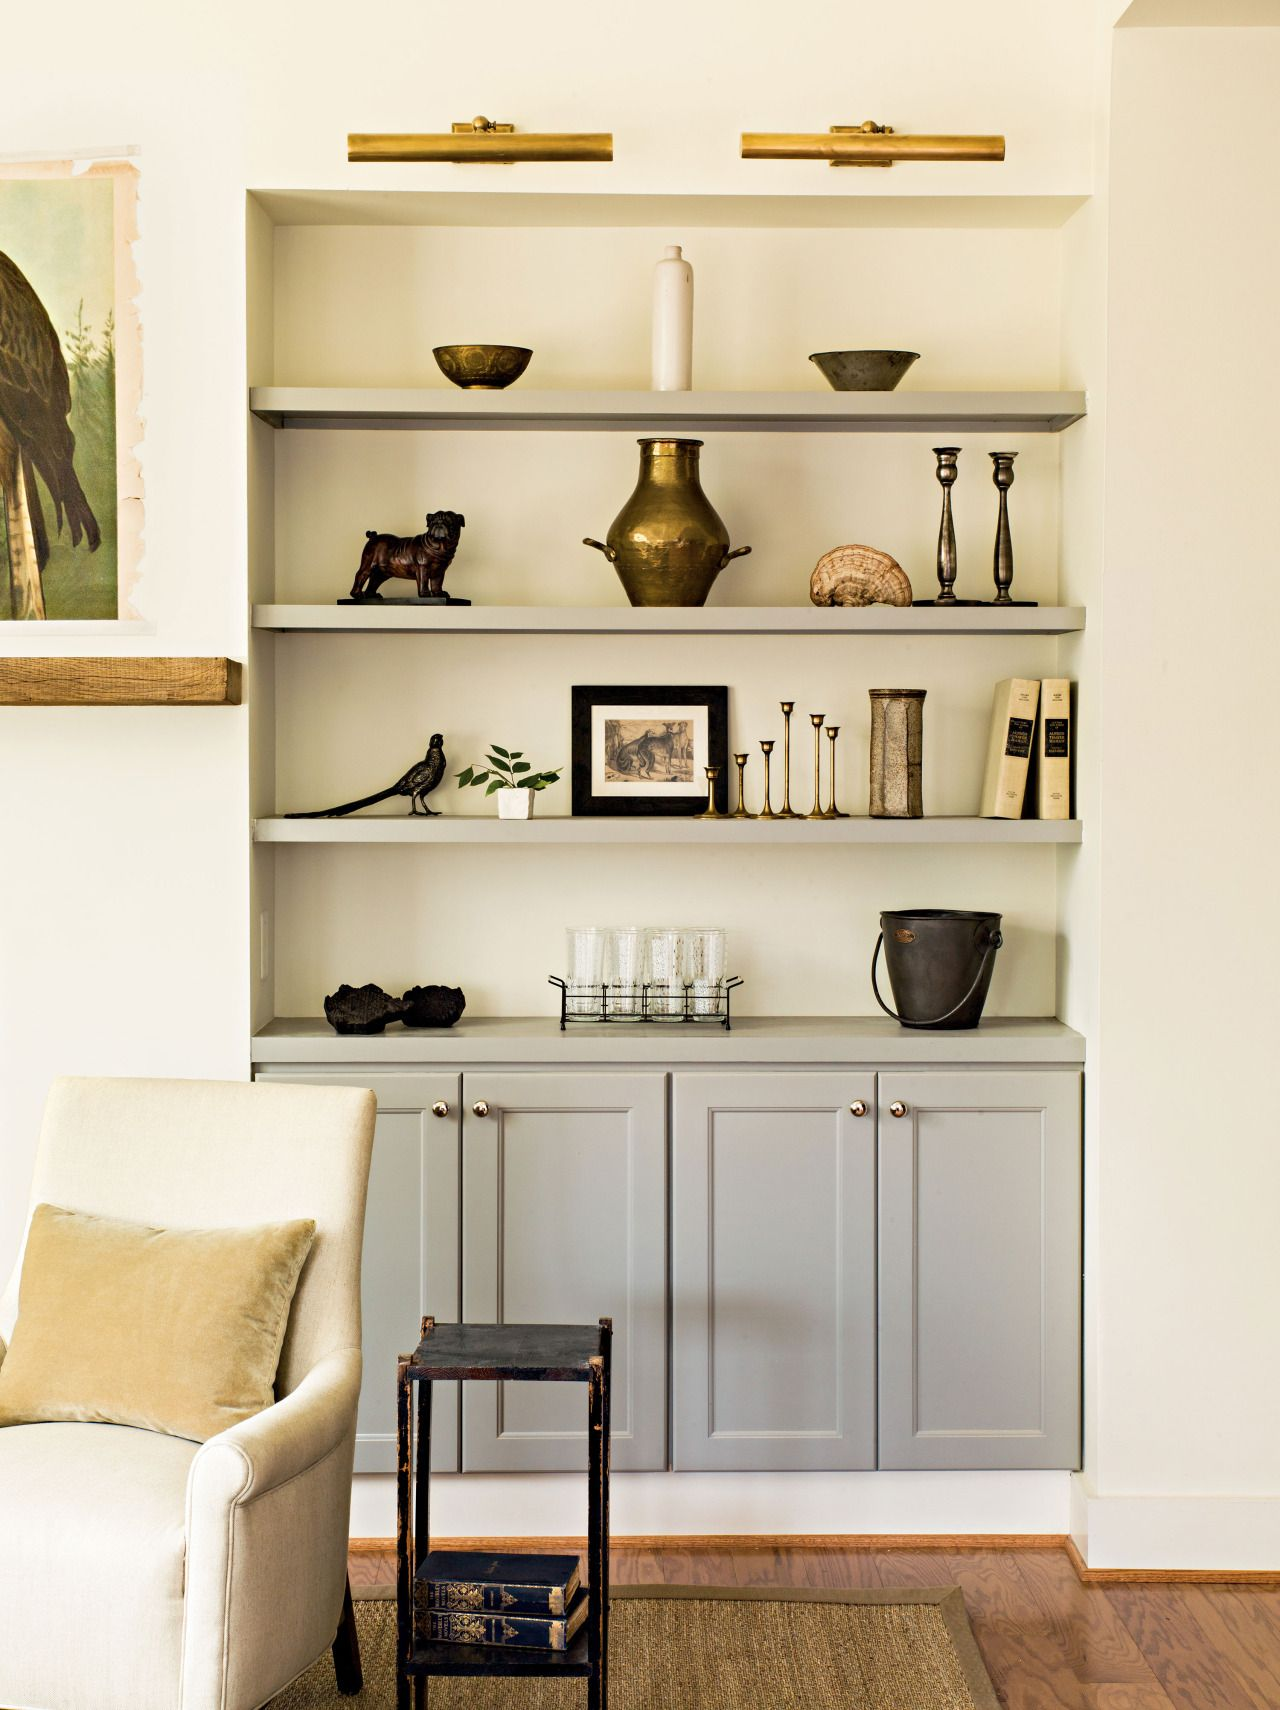 General lighting guidelines from interior lauren - Interior lighting design guidelines ...